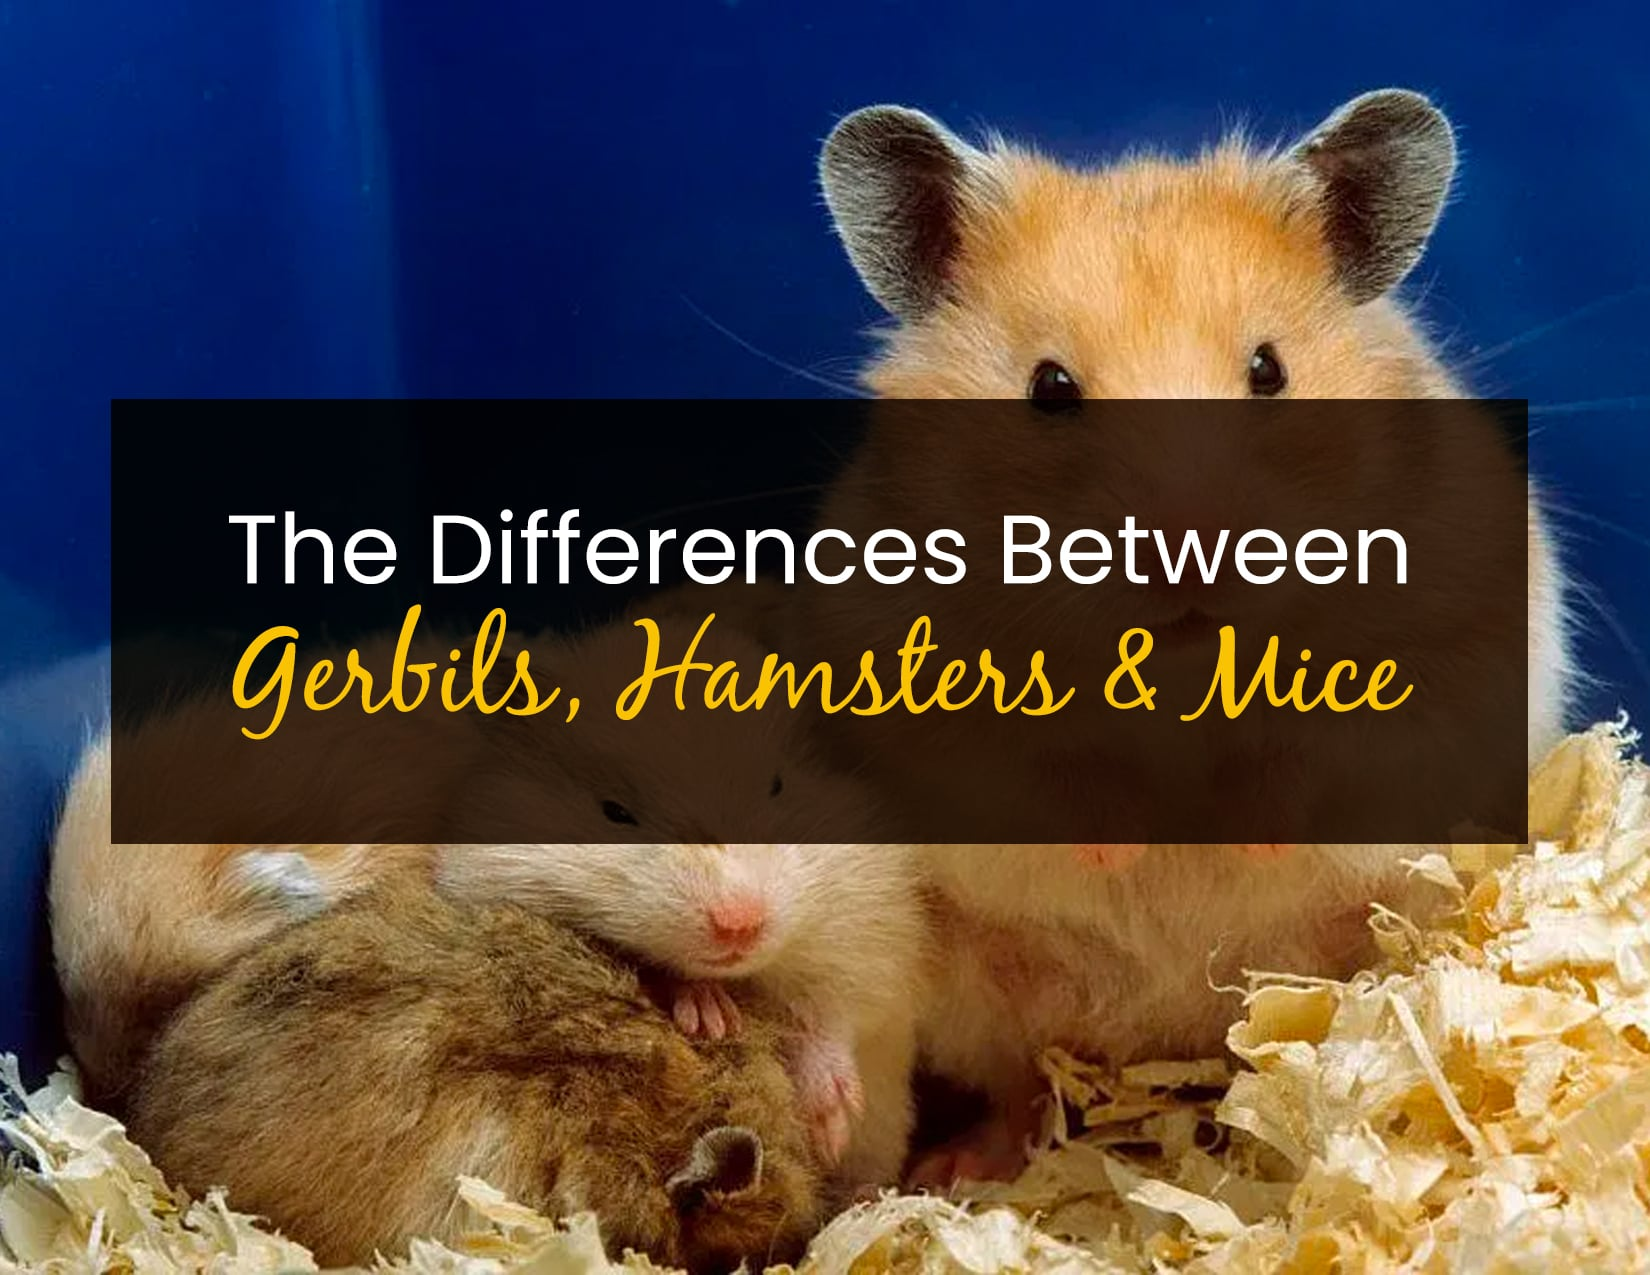 The Differences Between Gerbils, Hamsters & Mice